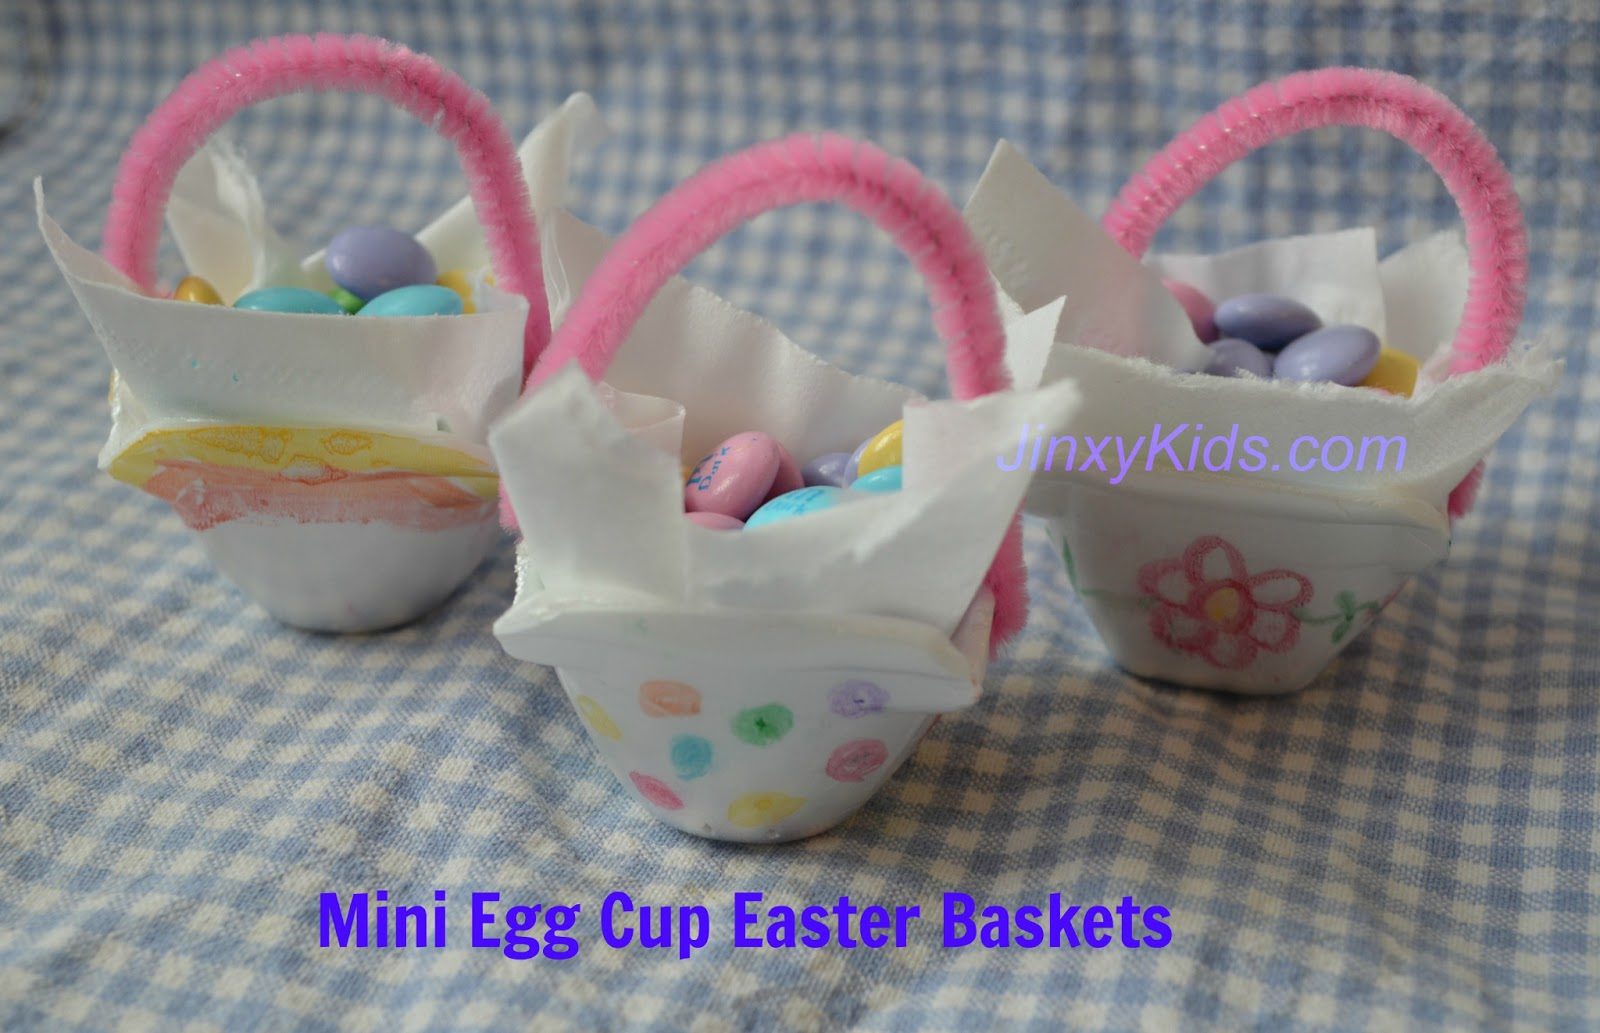 Mini Egg Cup Easter Baskets Craft Project